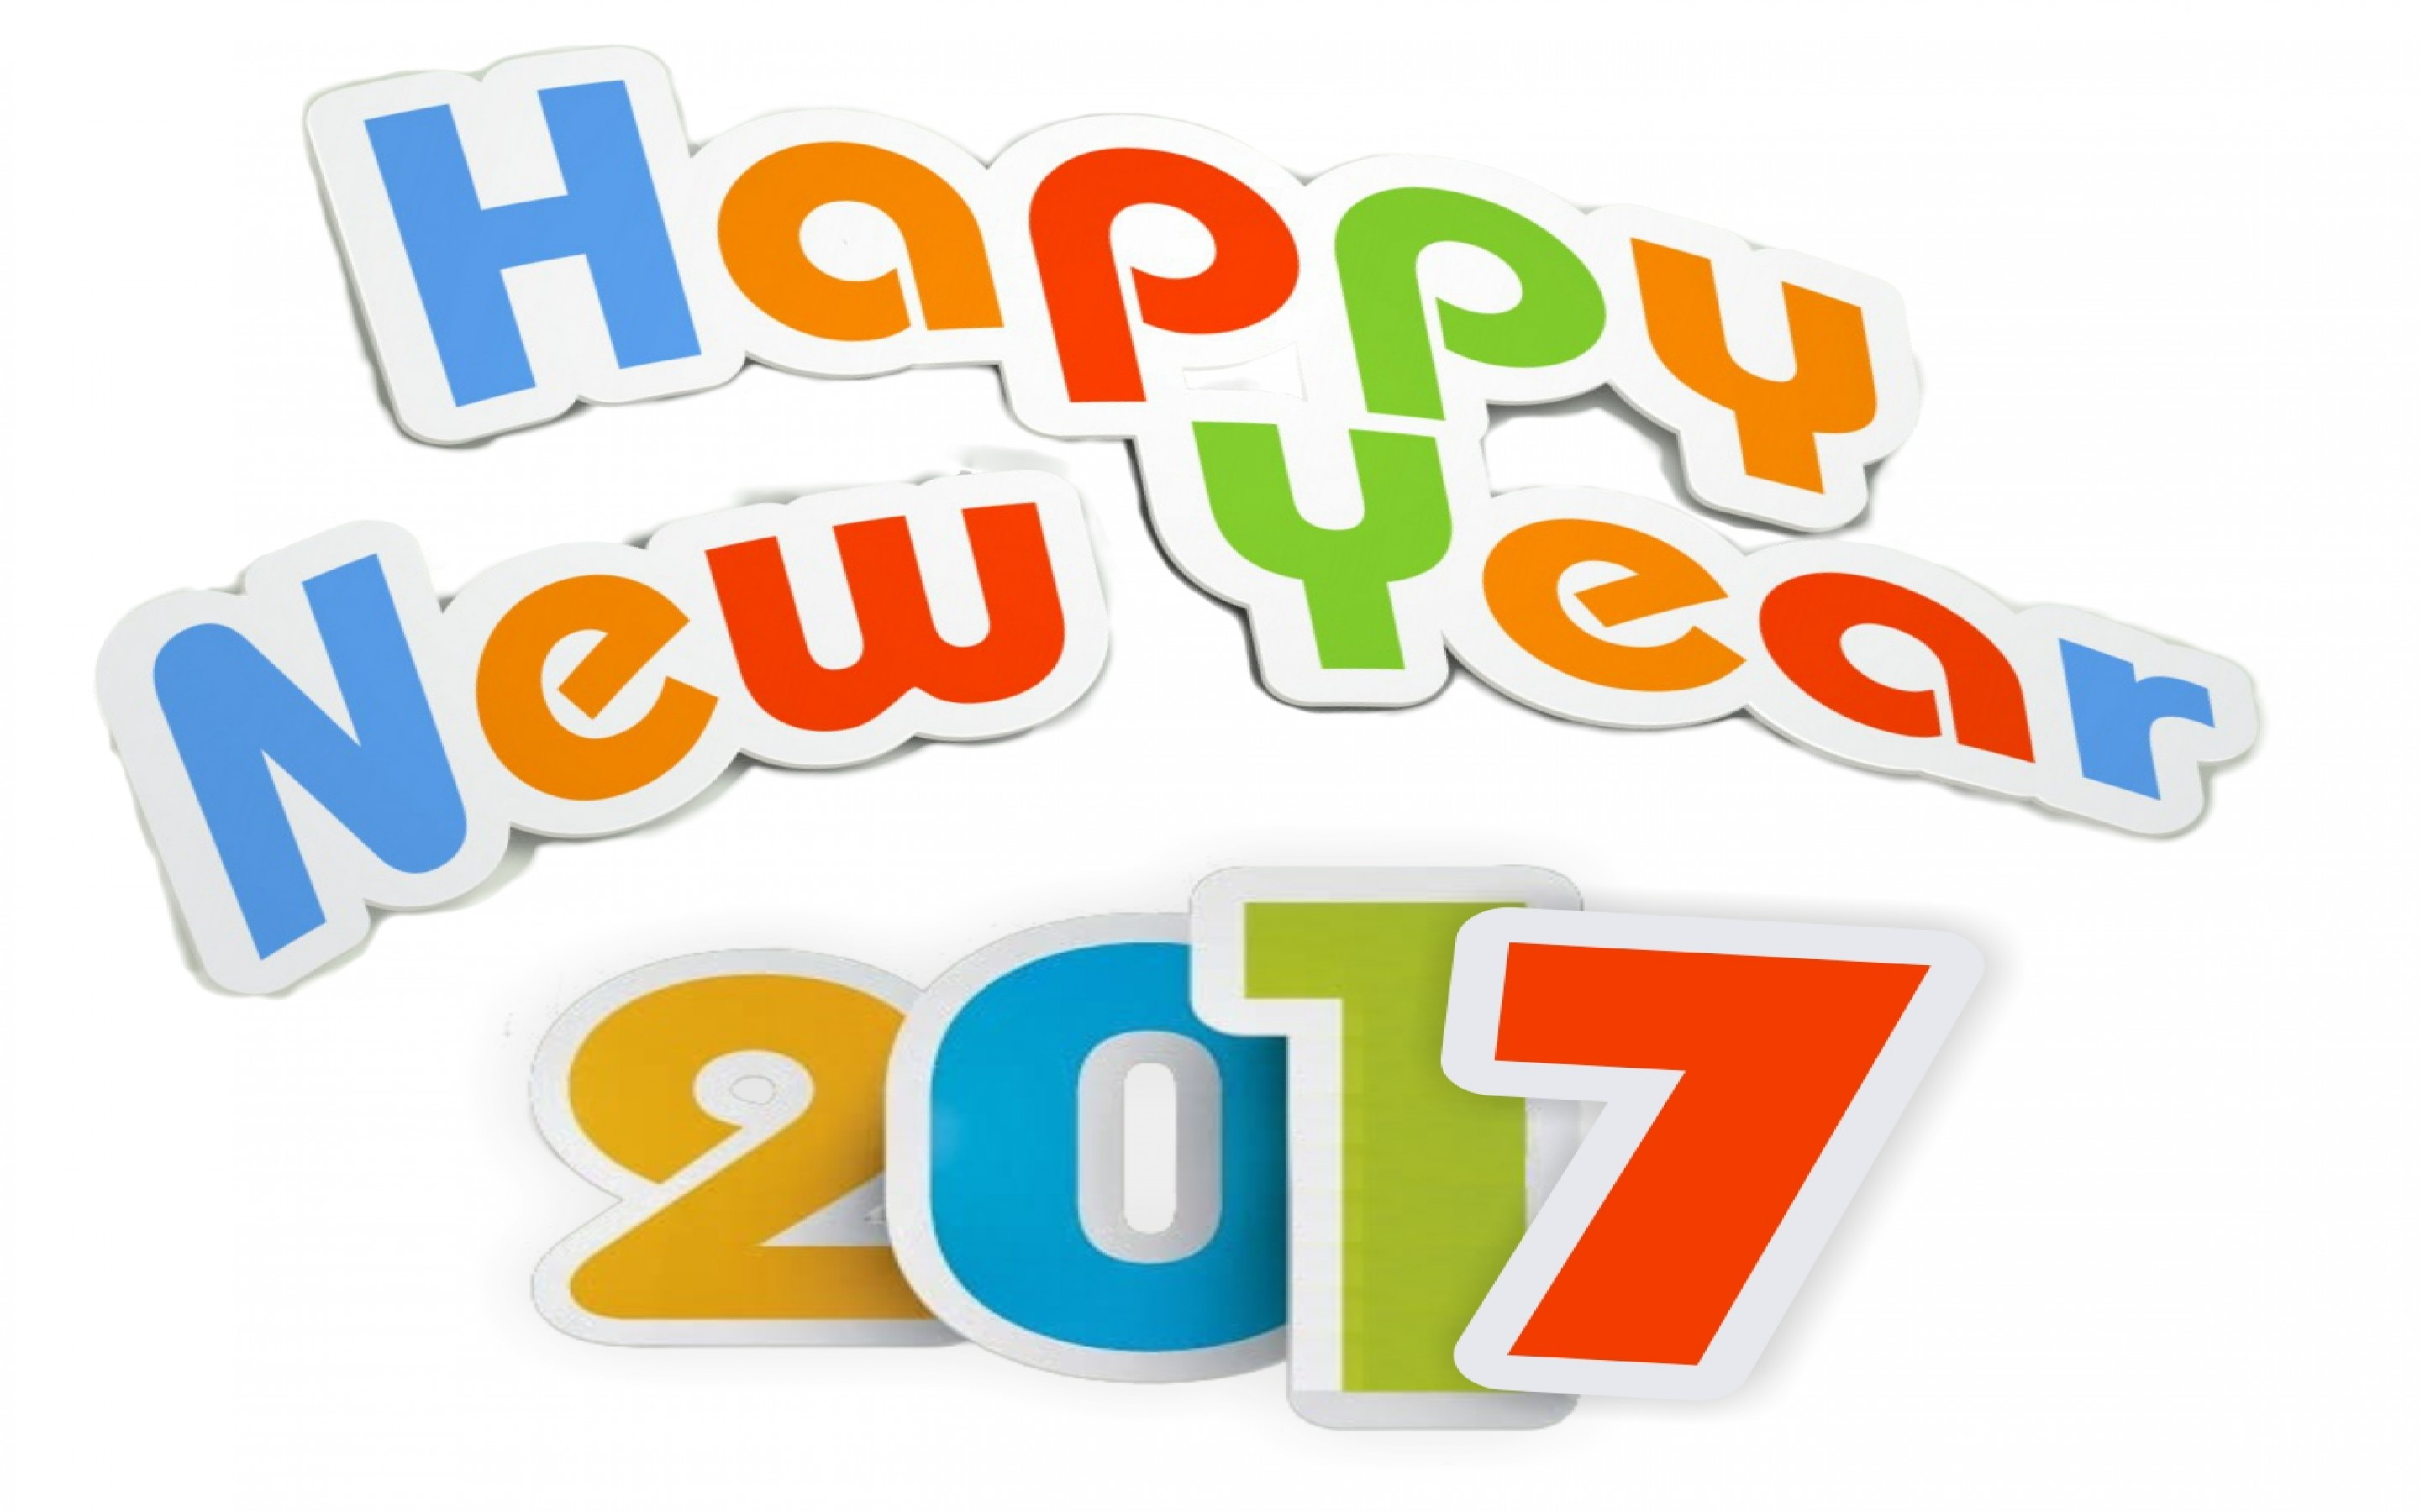 2017 happy new year wallpaper image 28815 happy new year png